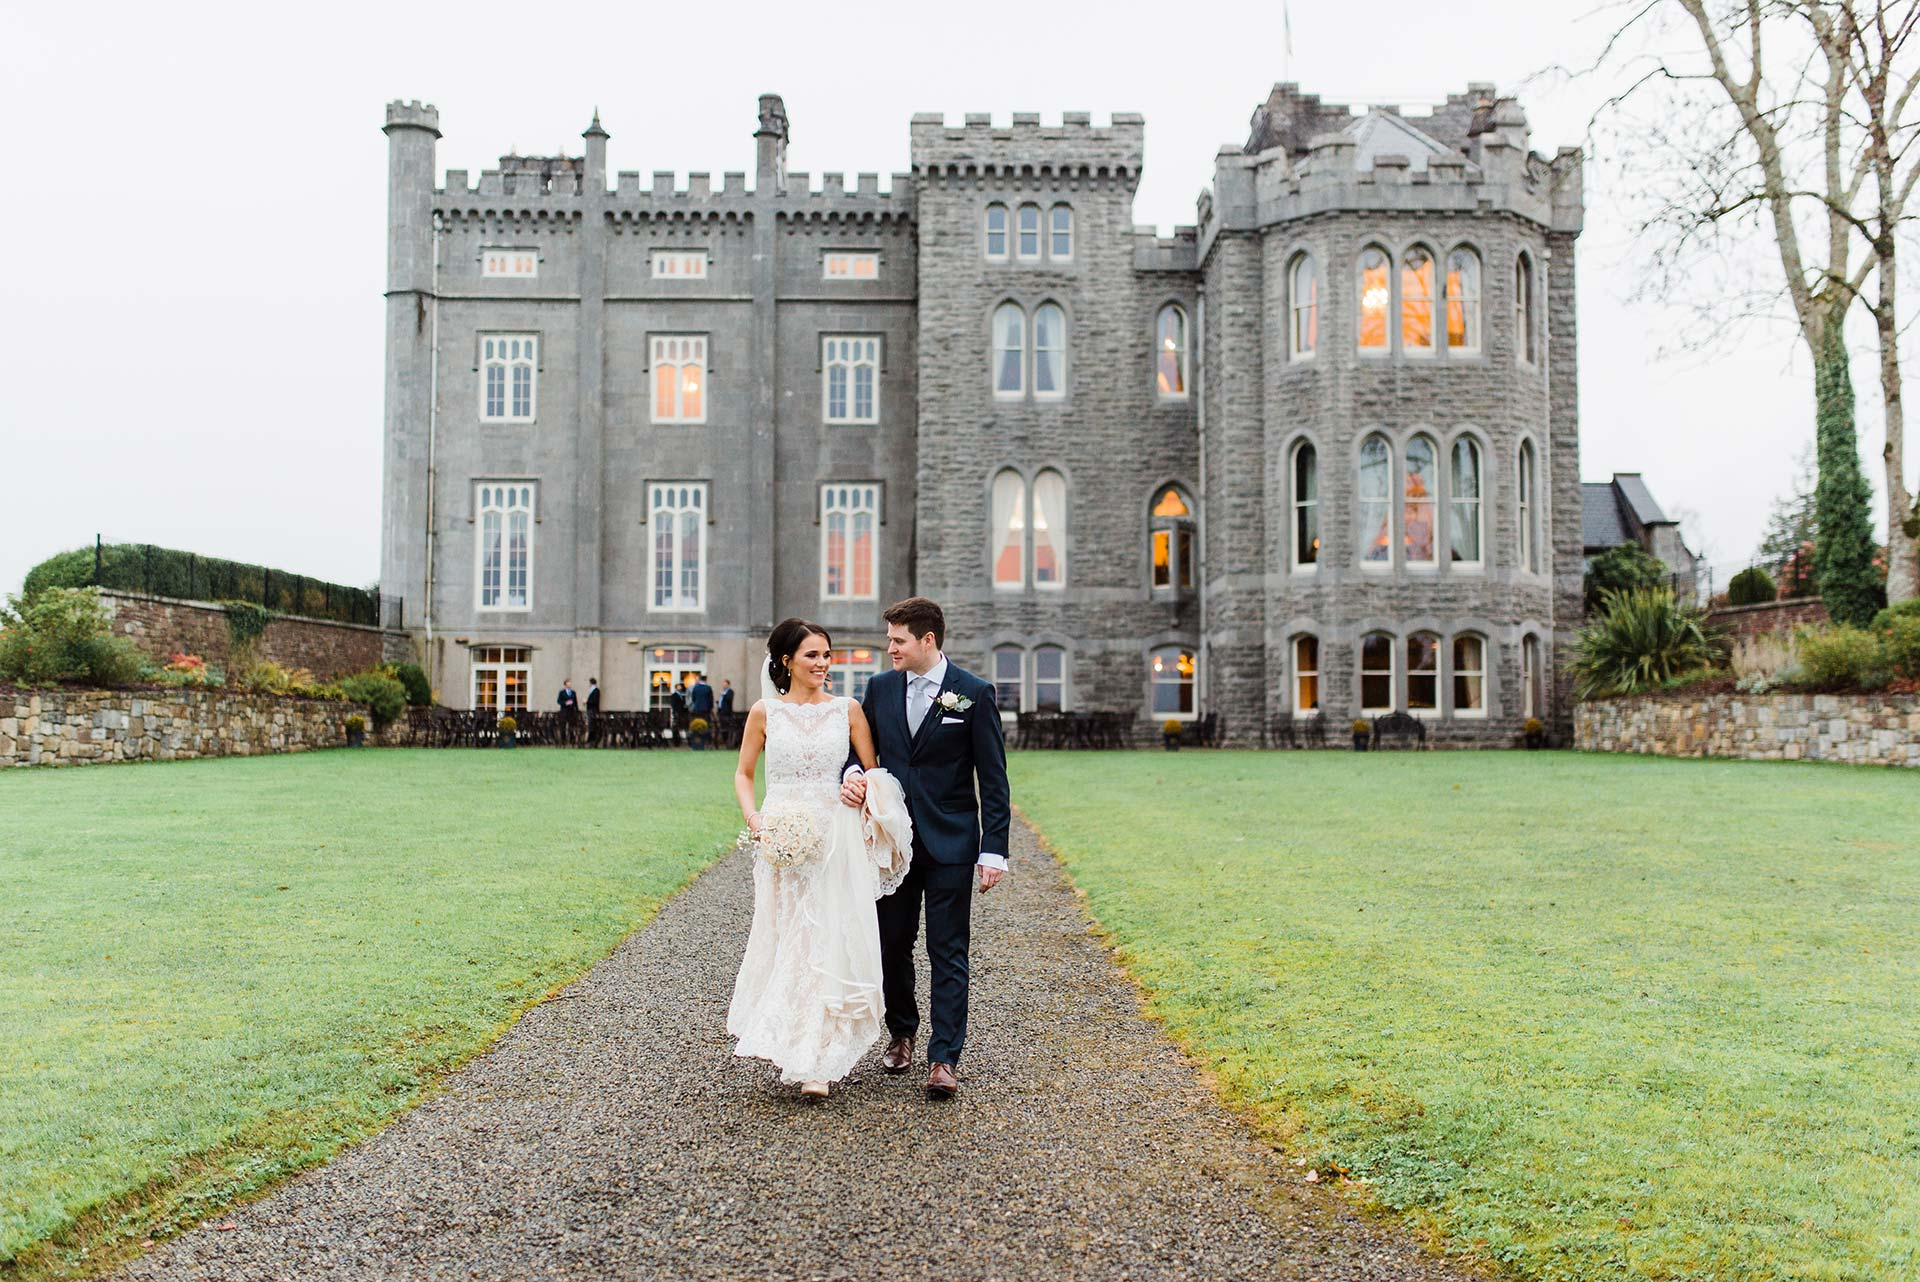 New married couple walks away from Kilronan Castle in Roscommon Ireland